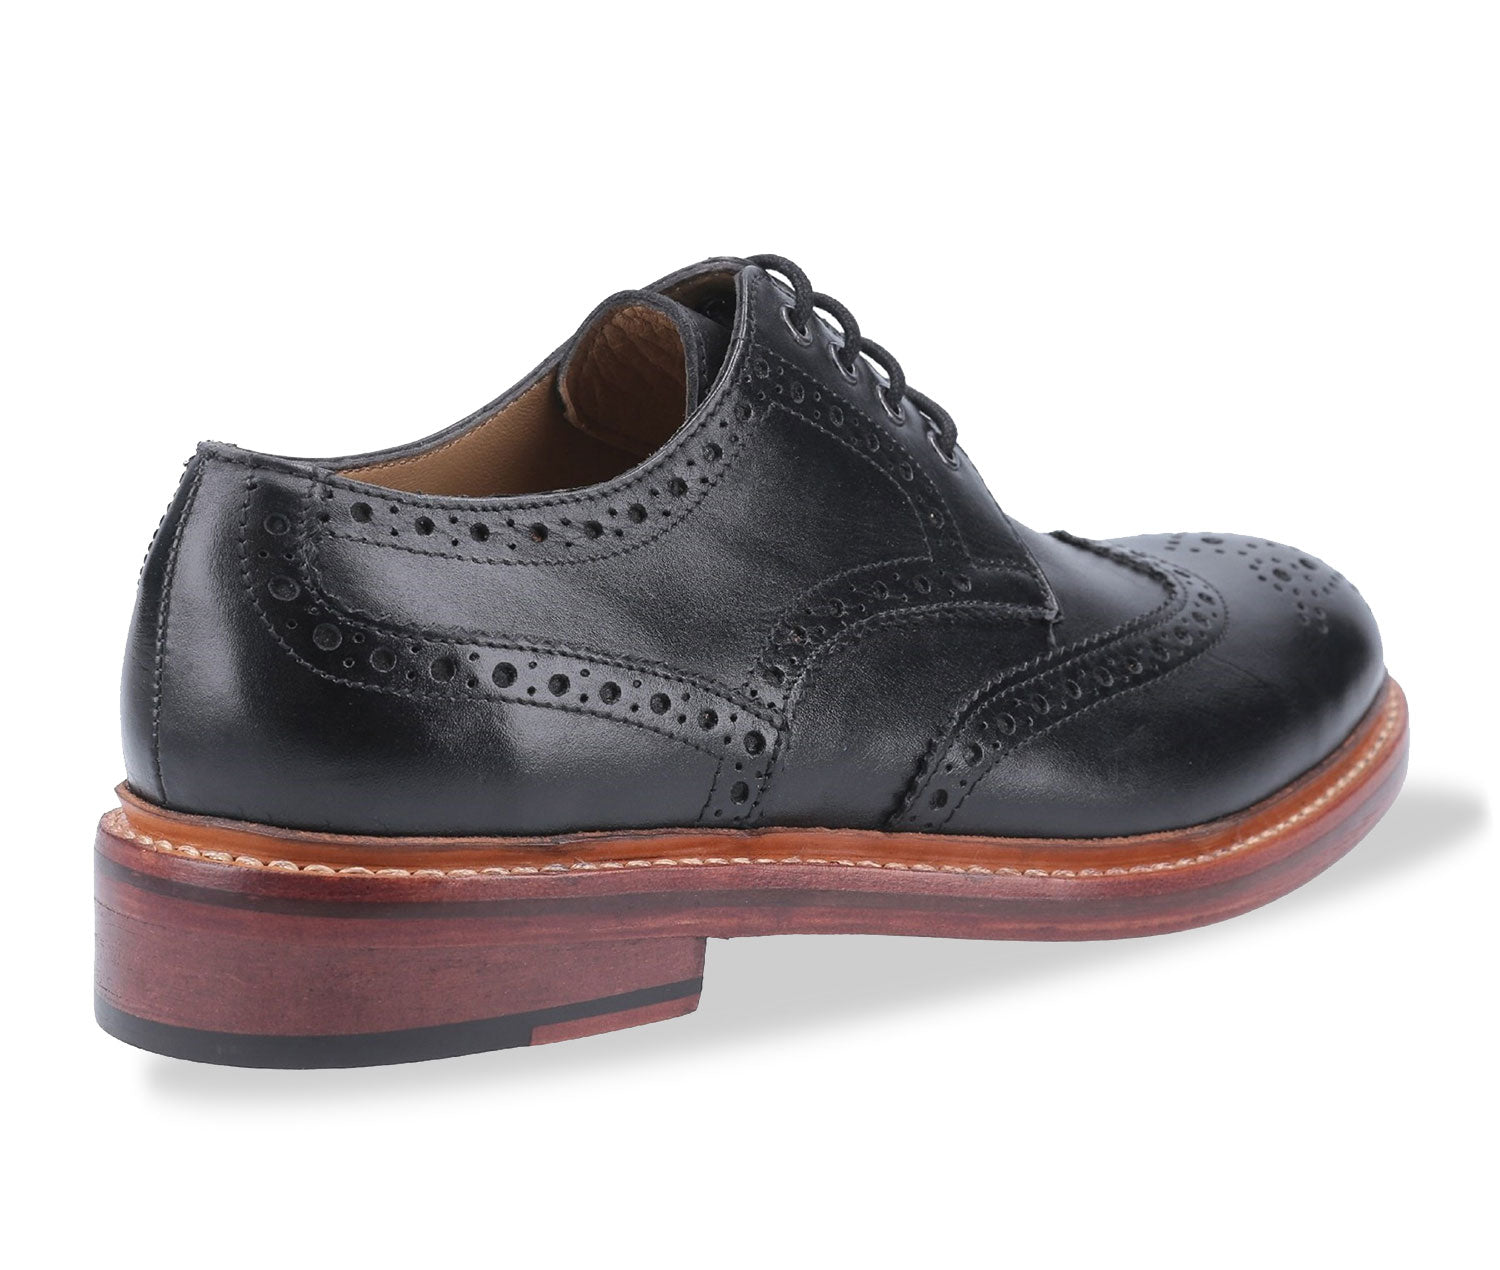 Black all leather brogue country shoe